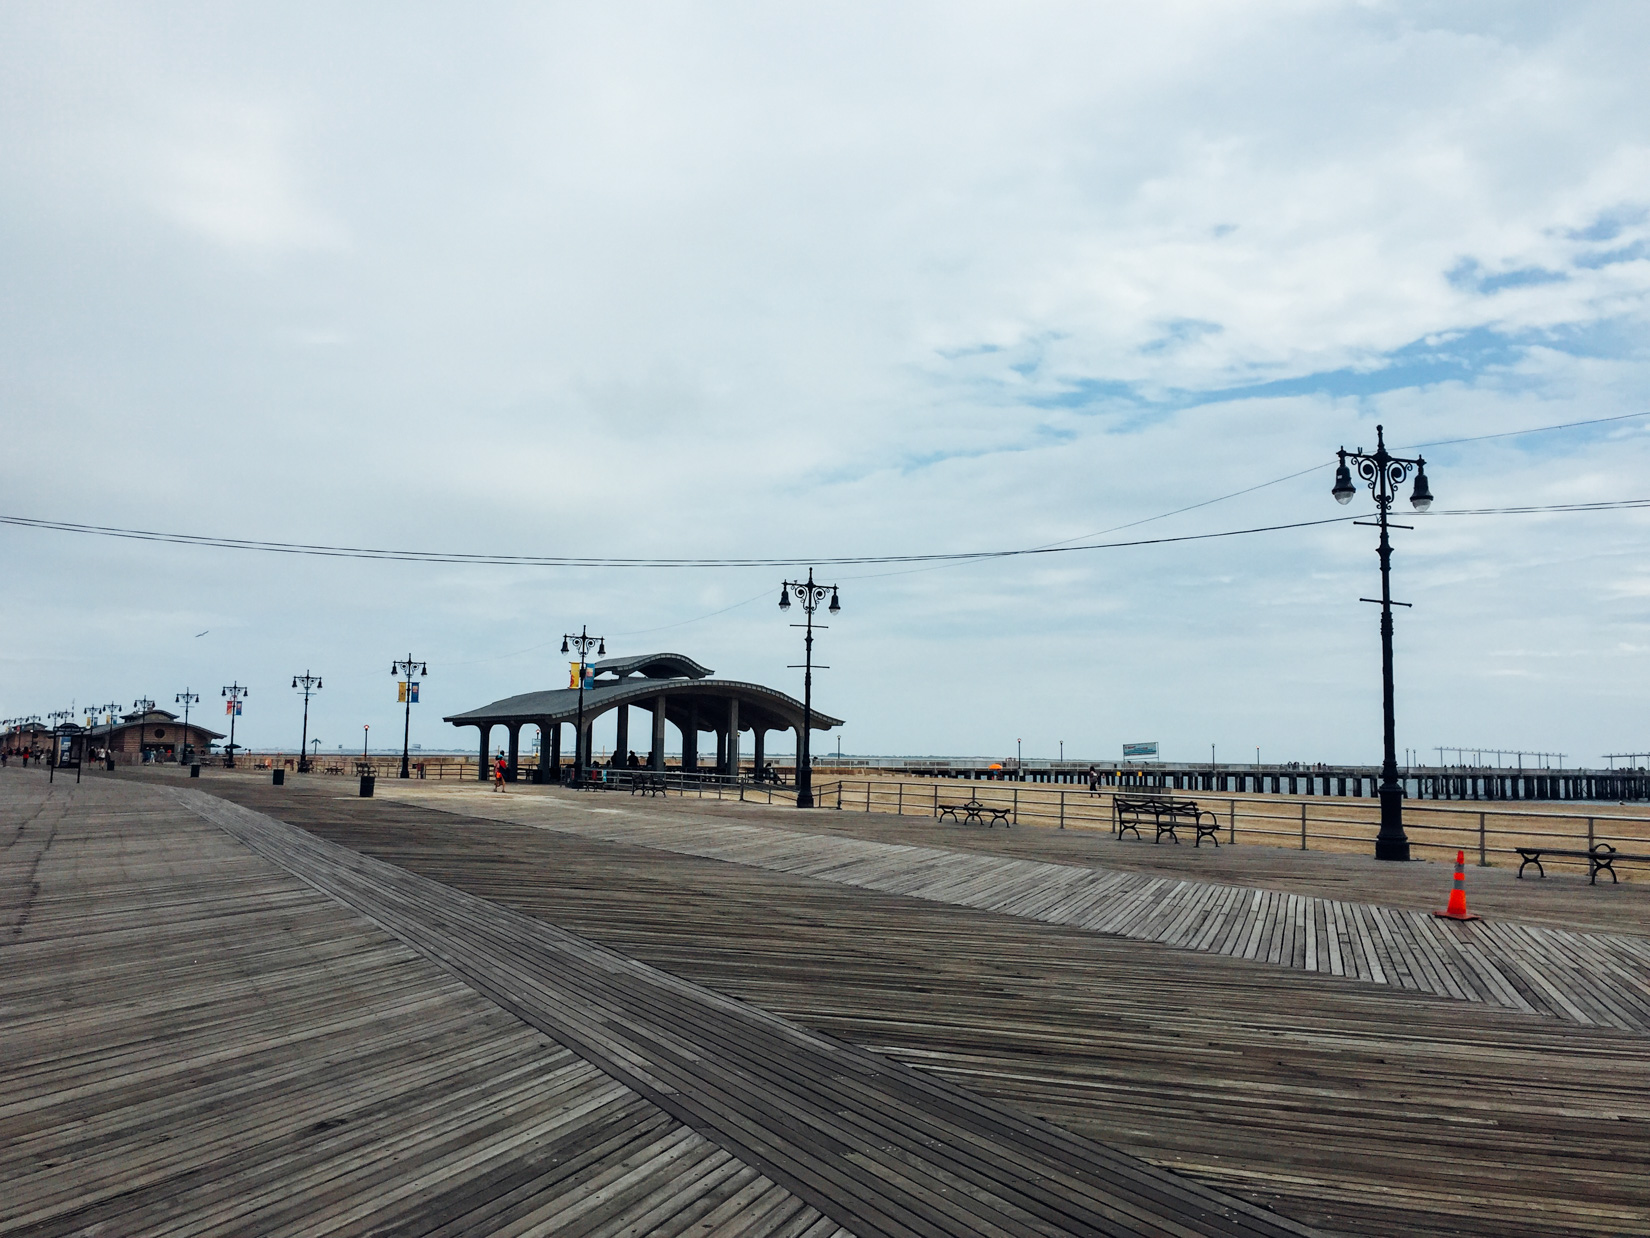 Boardwalk with Sand and Pier